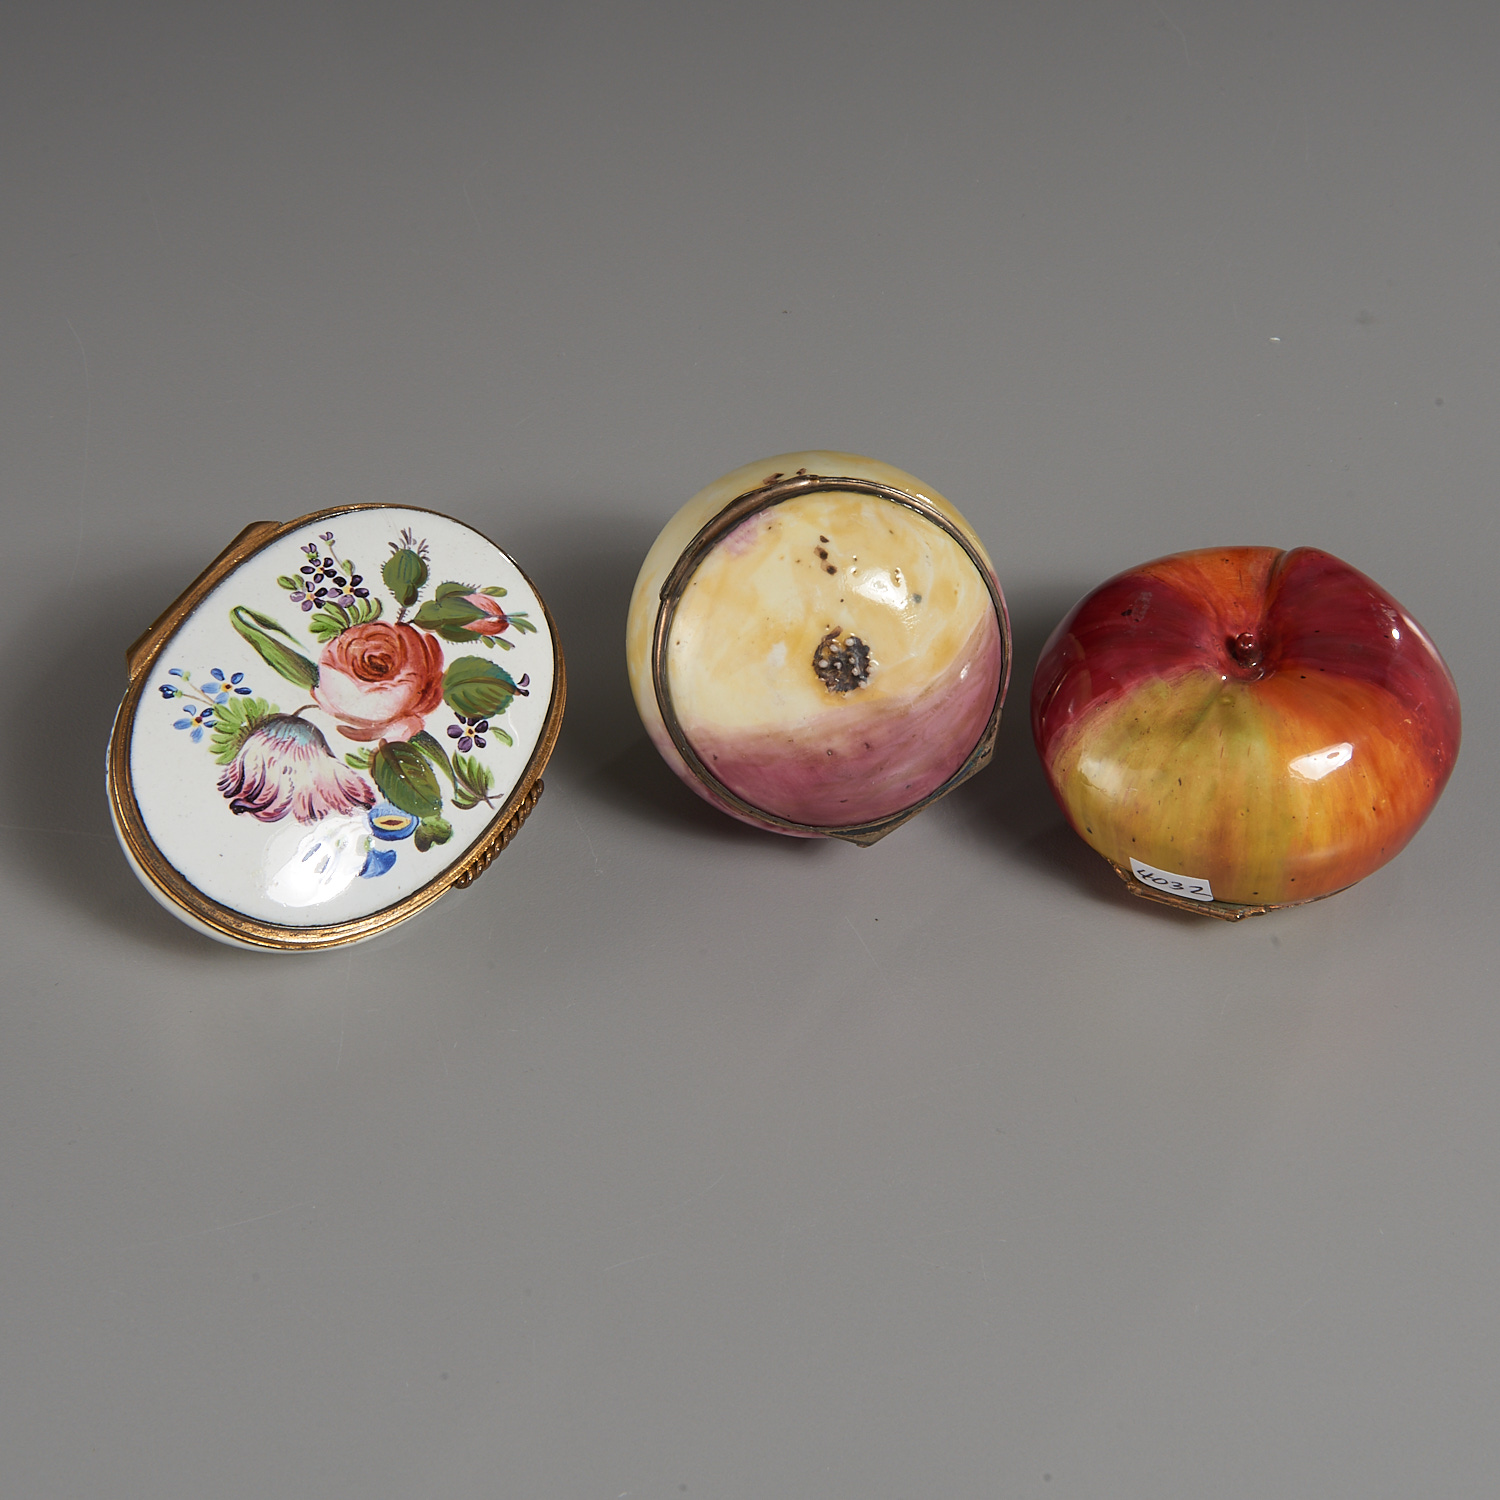 Lot 33 - (3) English Fruit and Floral Bonbonnieres